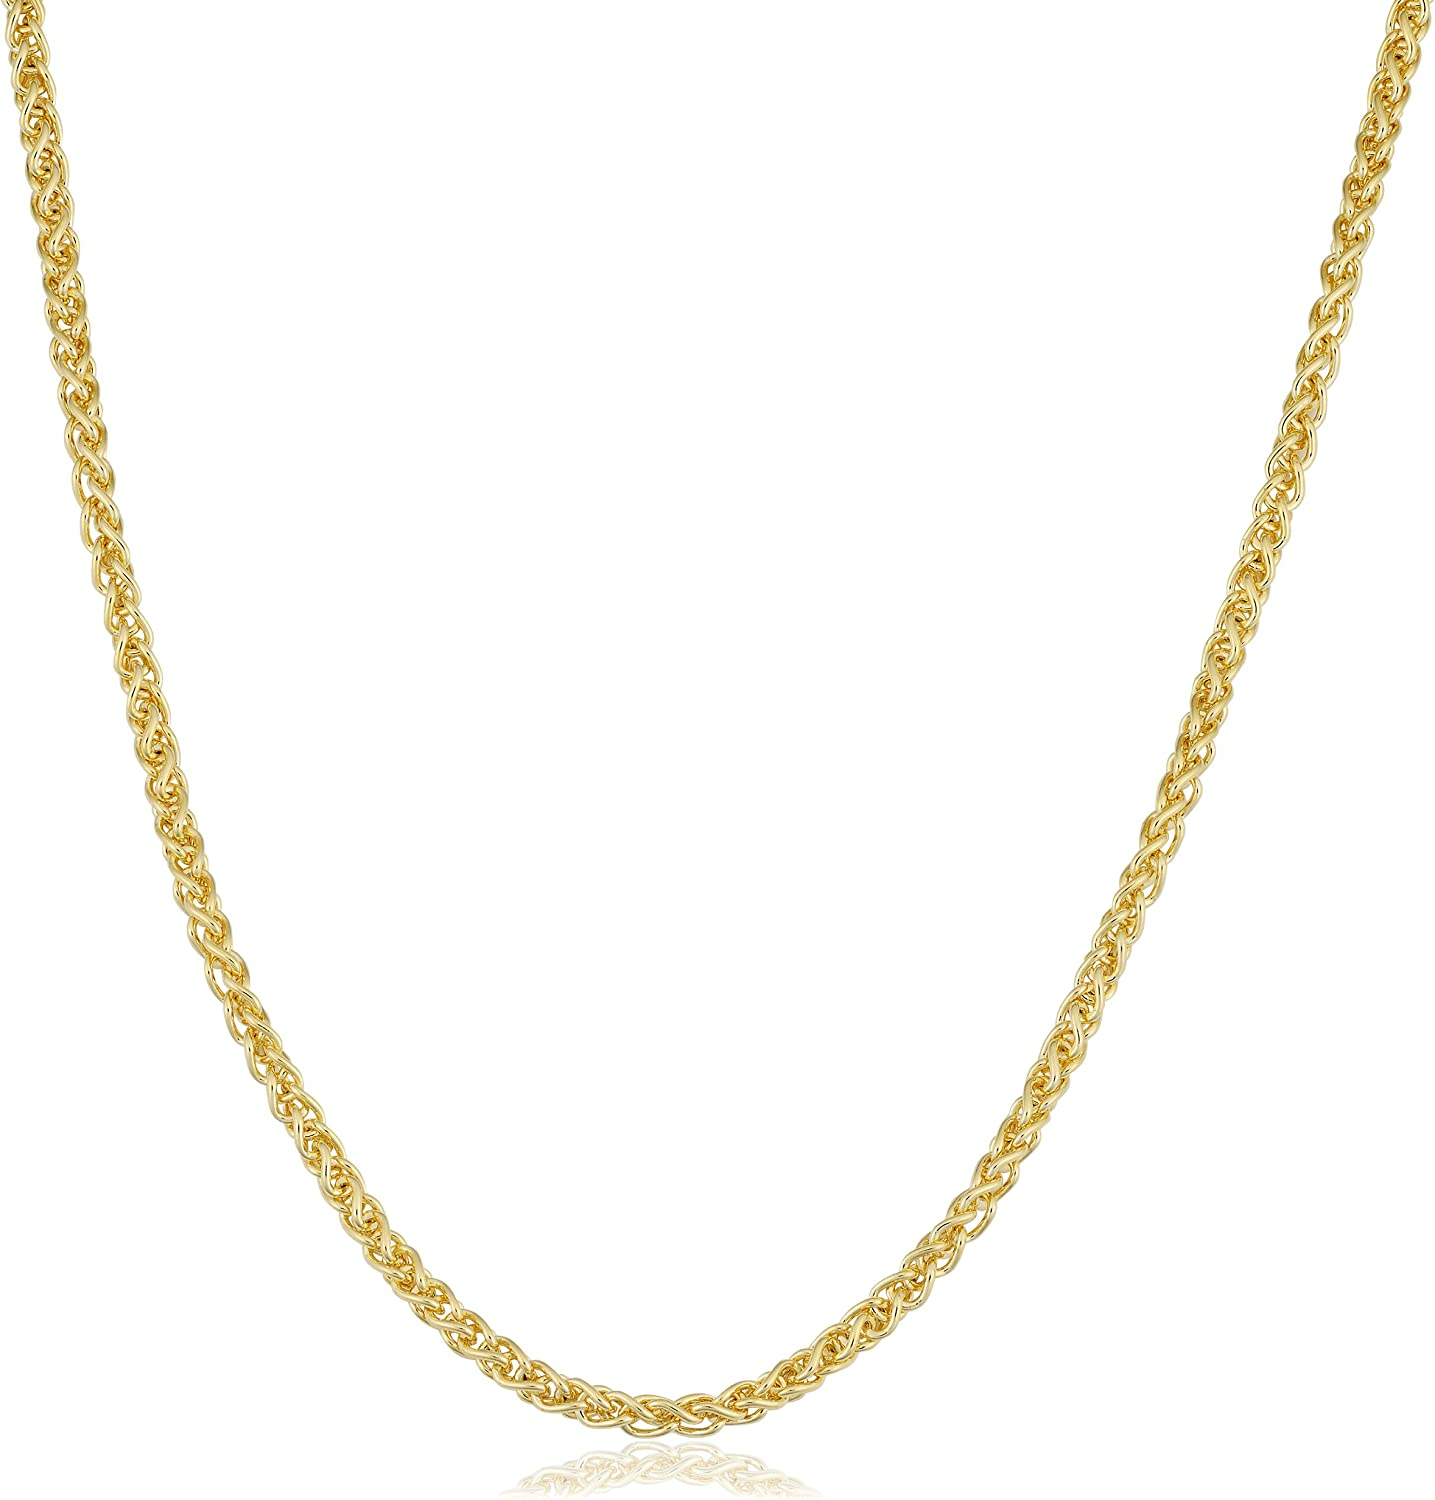 KoolJewelry 14k Yellow Gold Filled 2.5 mm Round Wheat Chain Necklace Unisex Jewelry for Men and Women